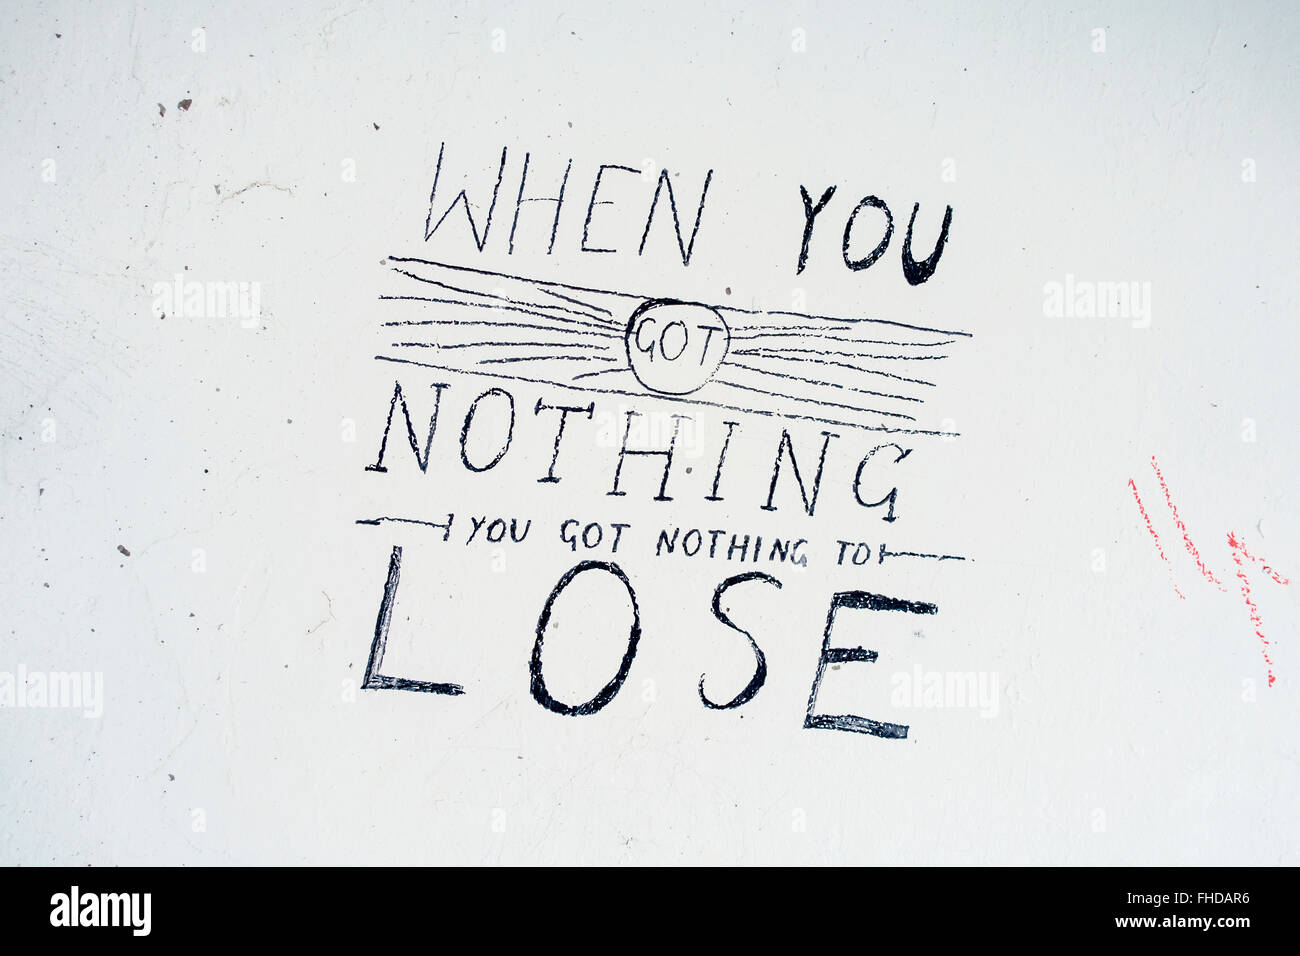 Graffiti When You Got Nothing You Got Nothing to Lose - Stock Image